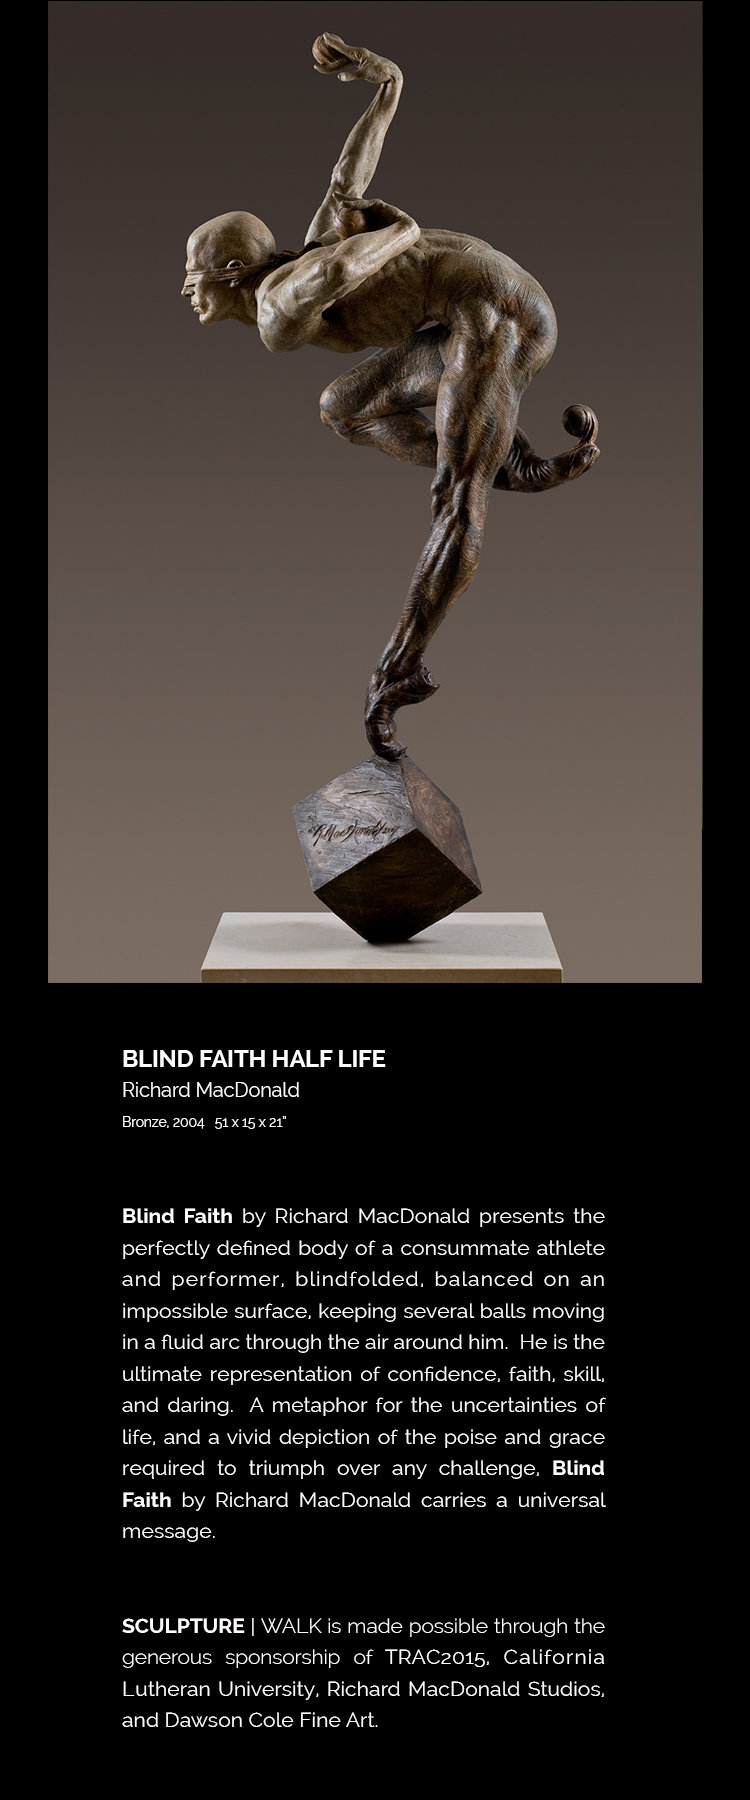 Blind Faith by Richard MacDonald